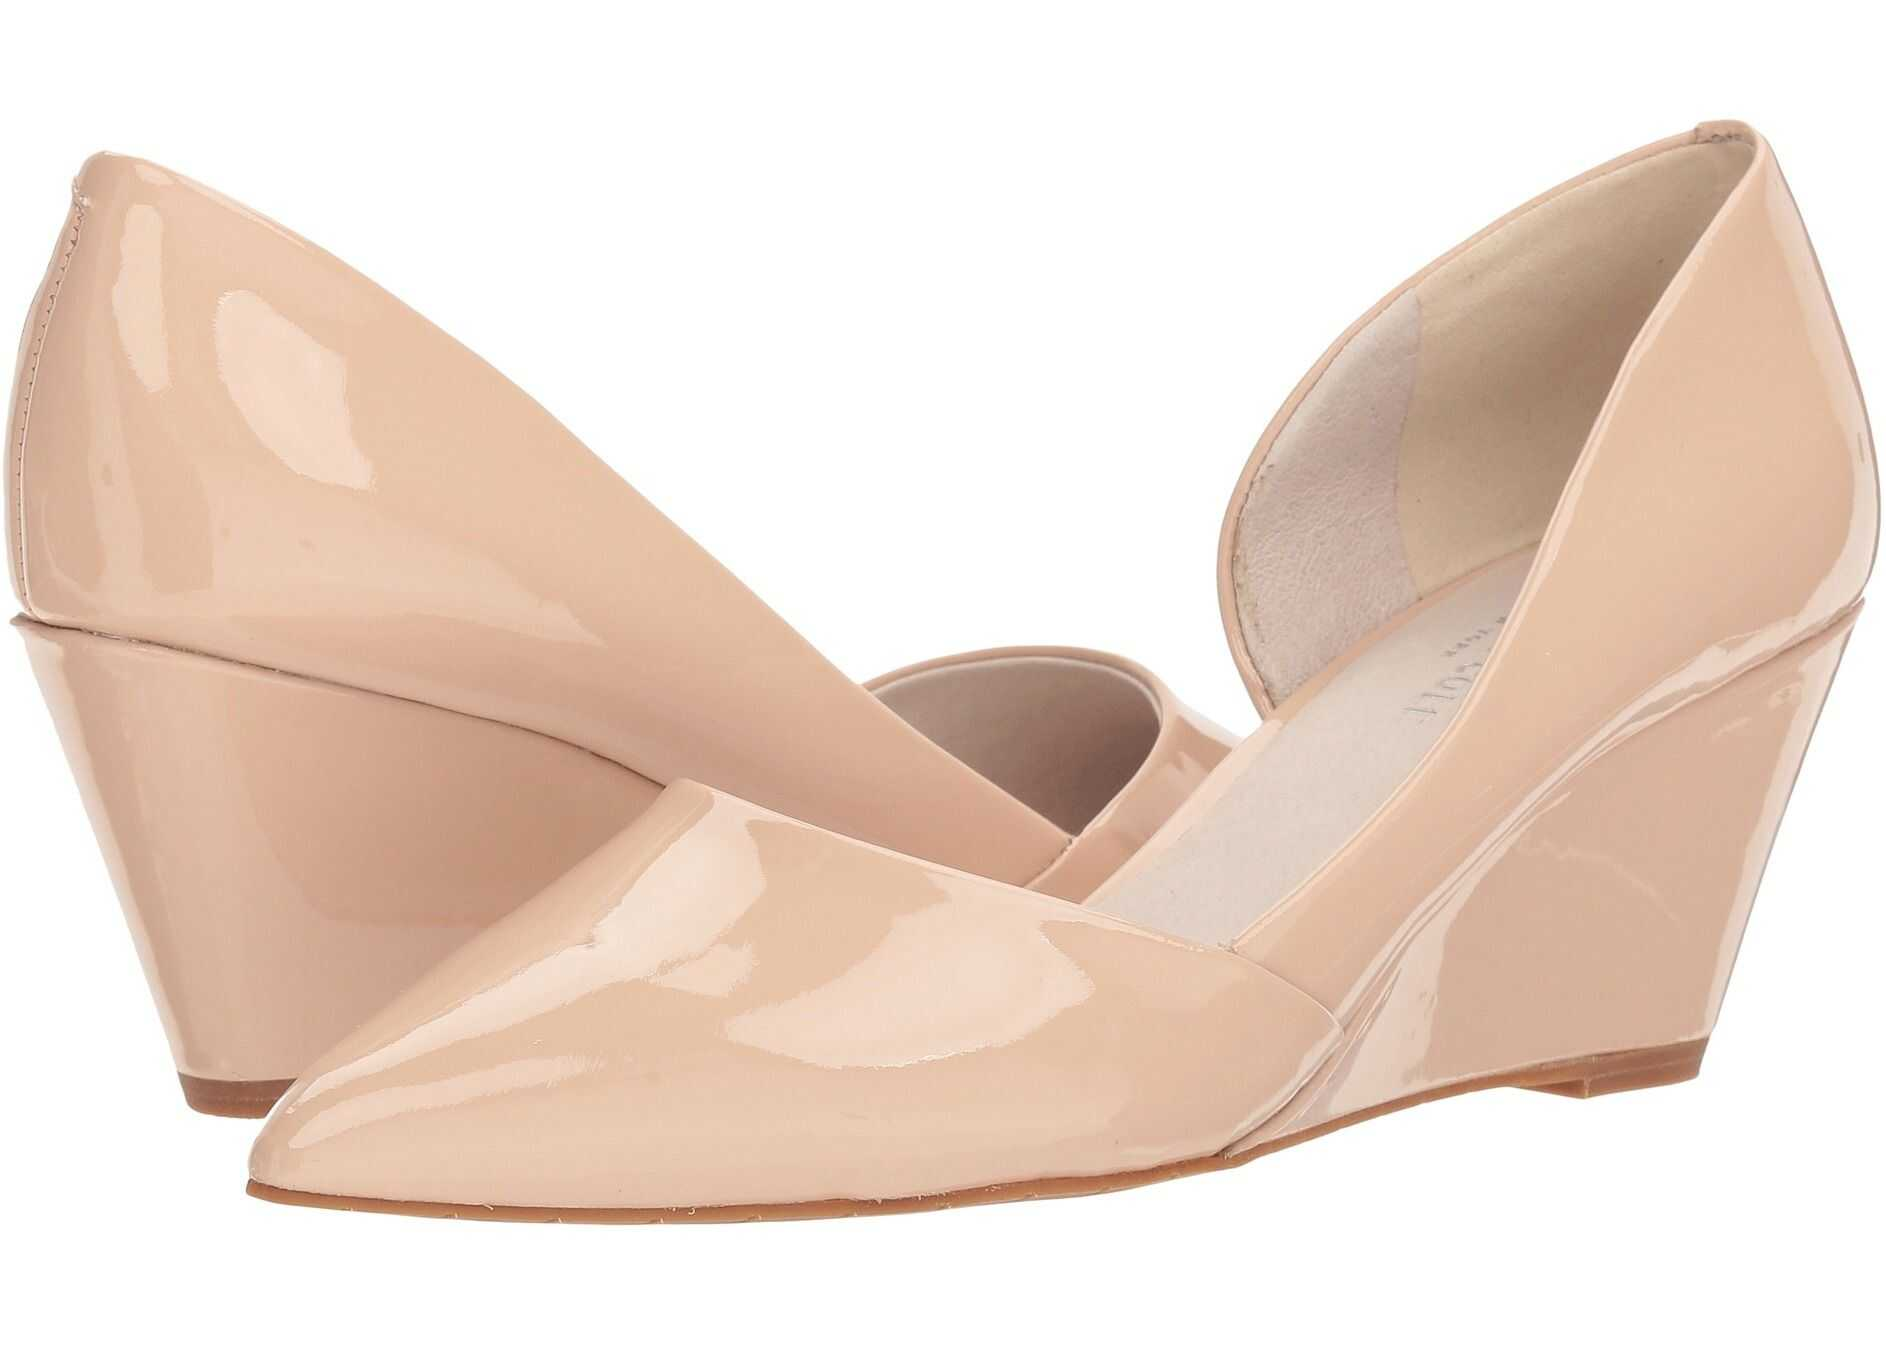 Kenneth Cole New York Ellis* Nude Patent Leather